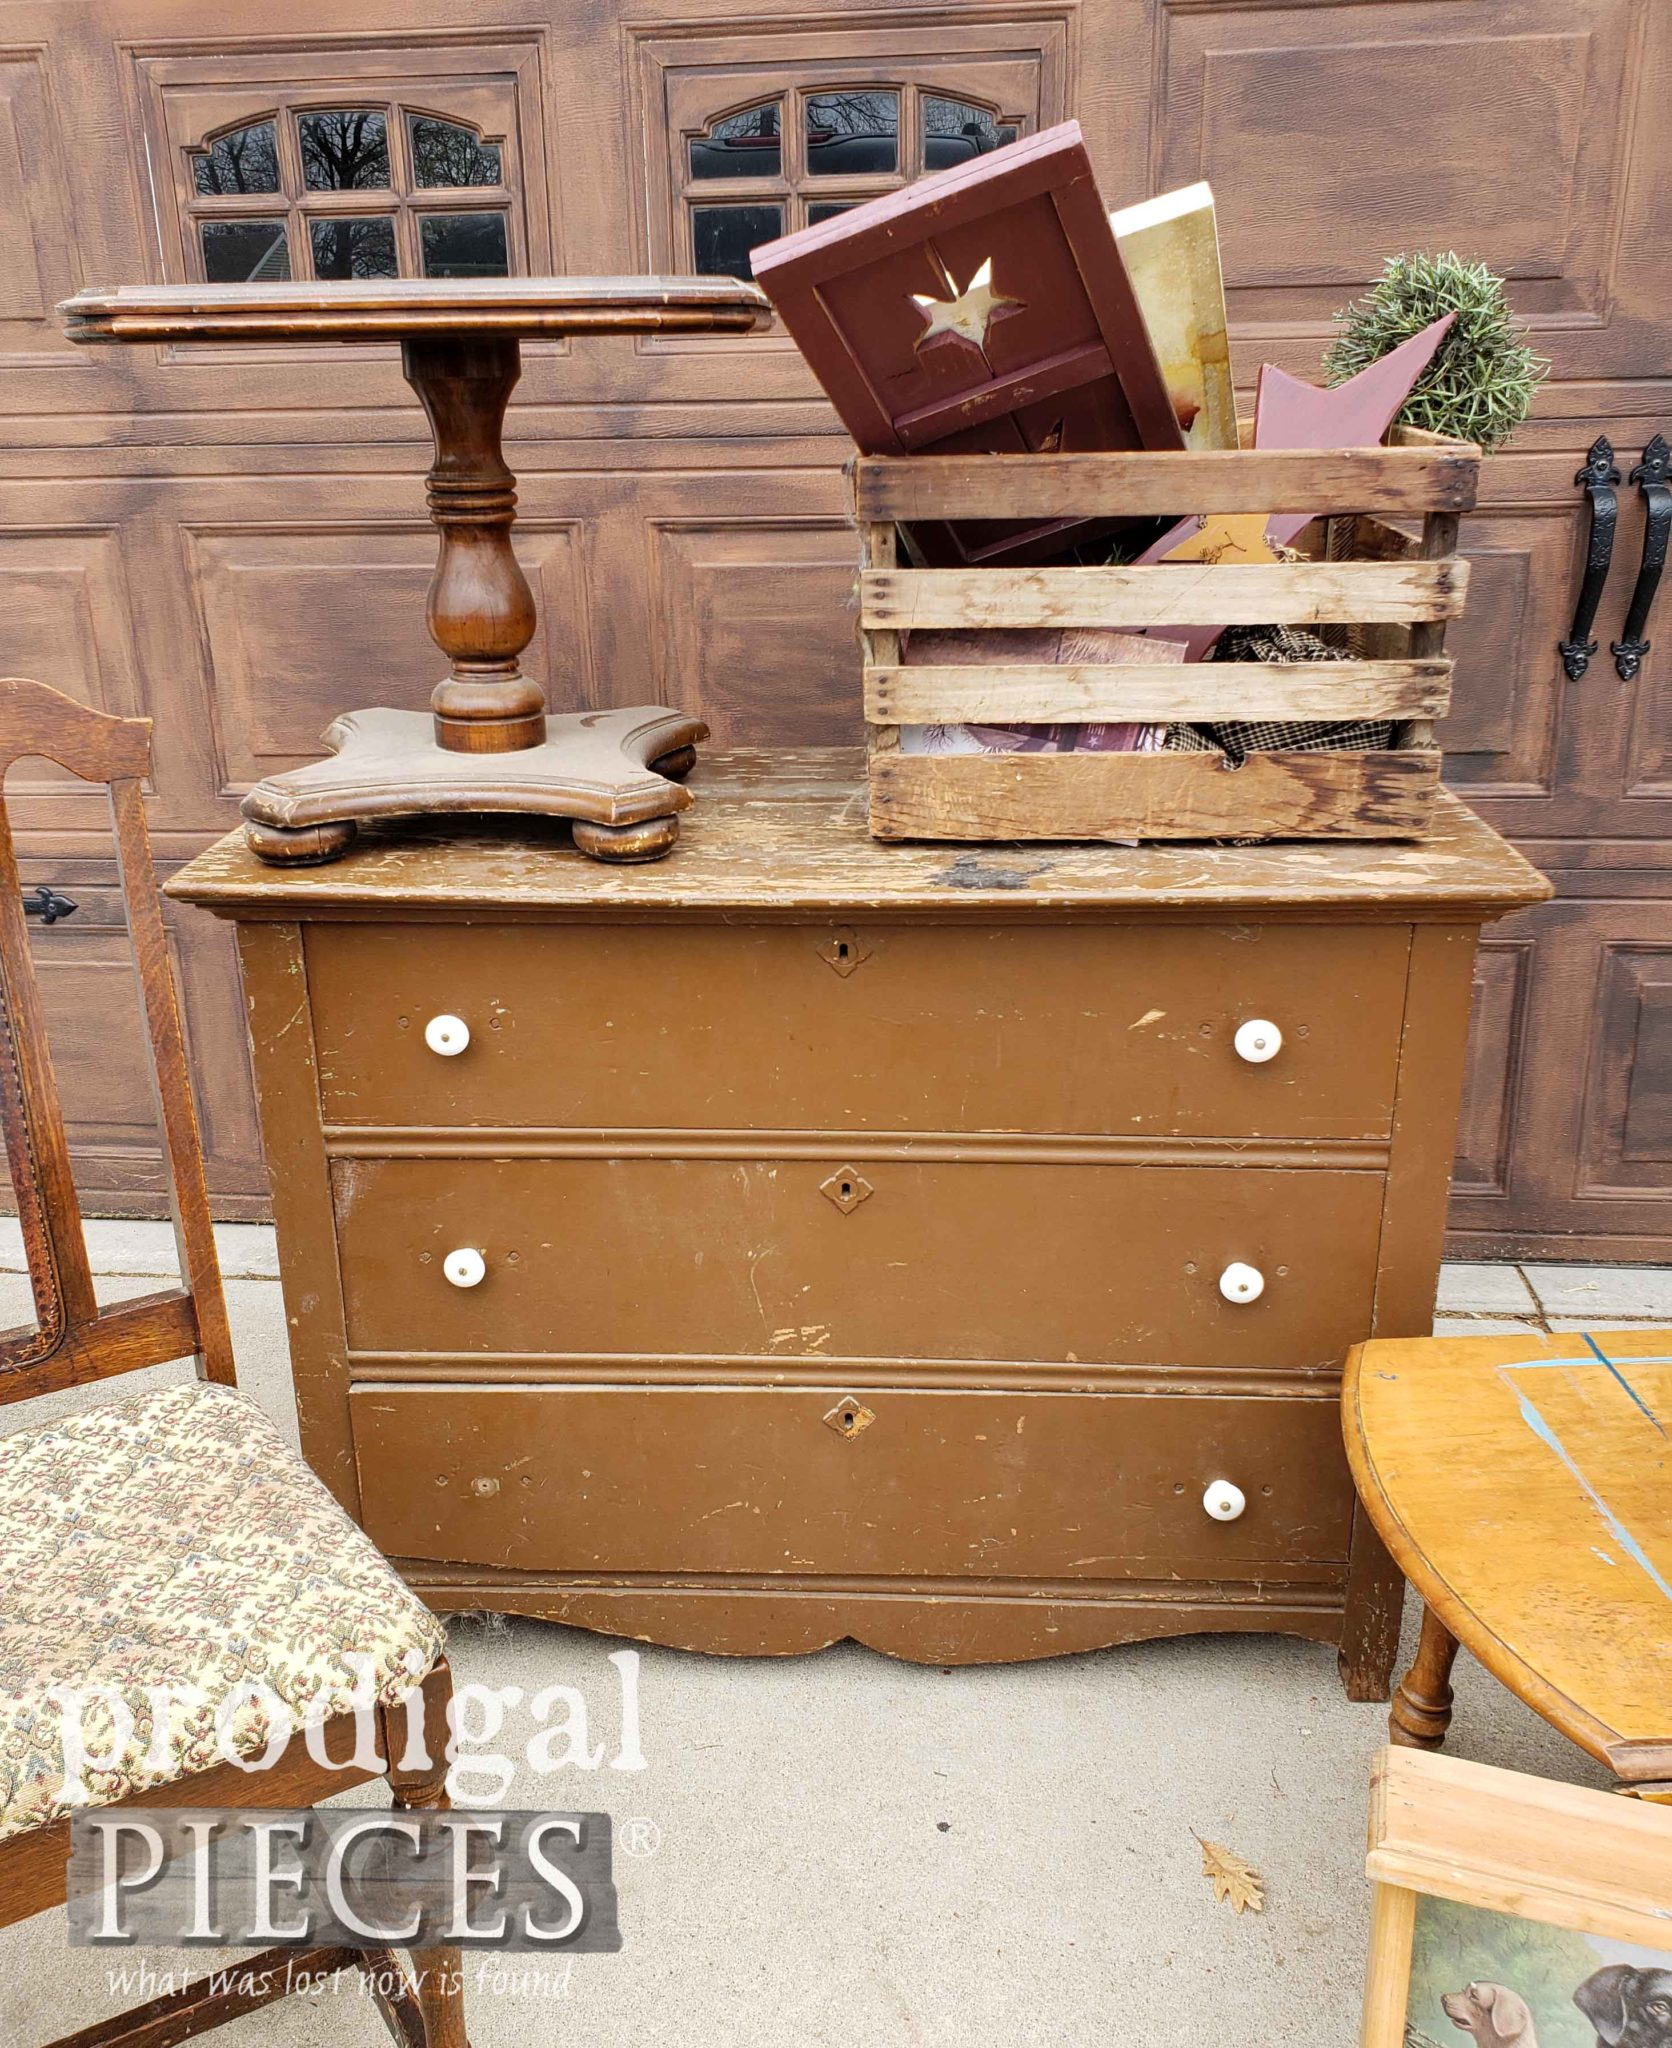 Antique Chest of Drawers Found Curbside by Larissa of Prodigal Pieces | prodigalpieces.com